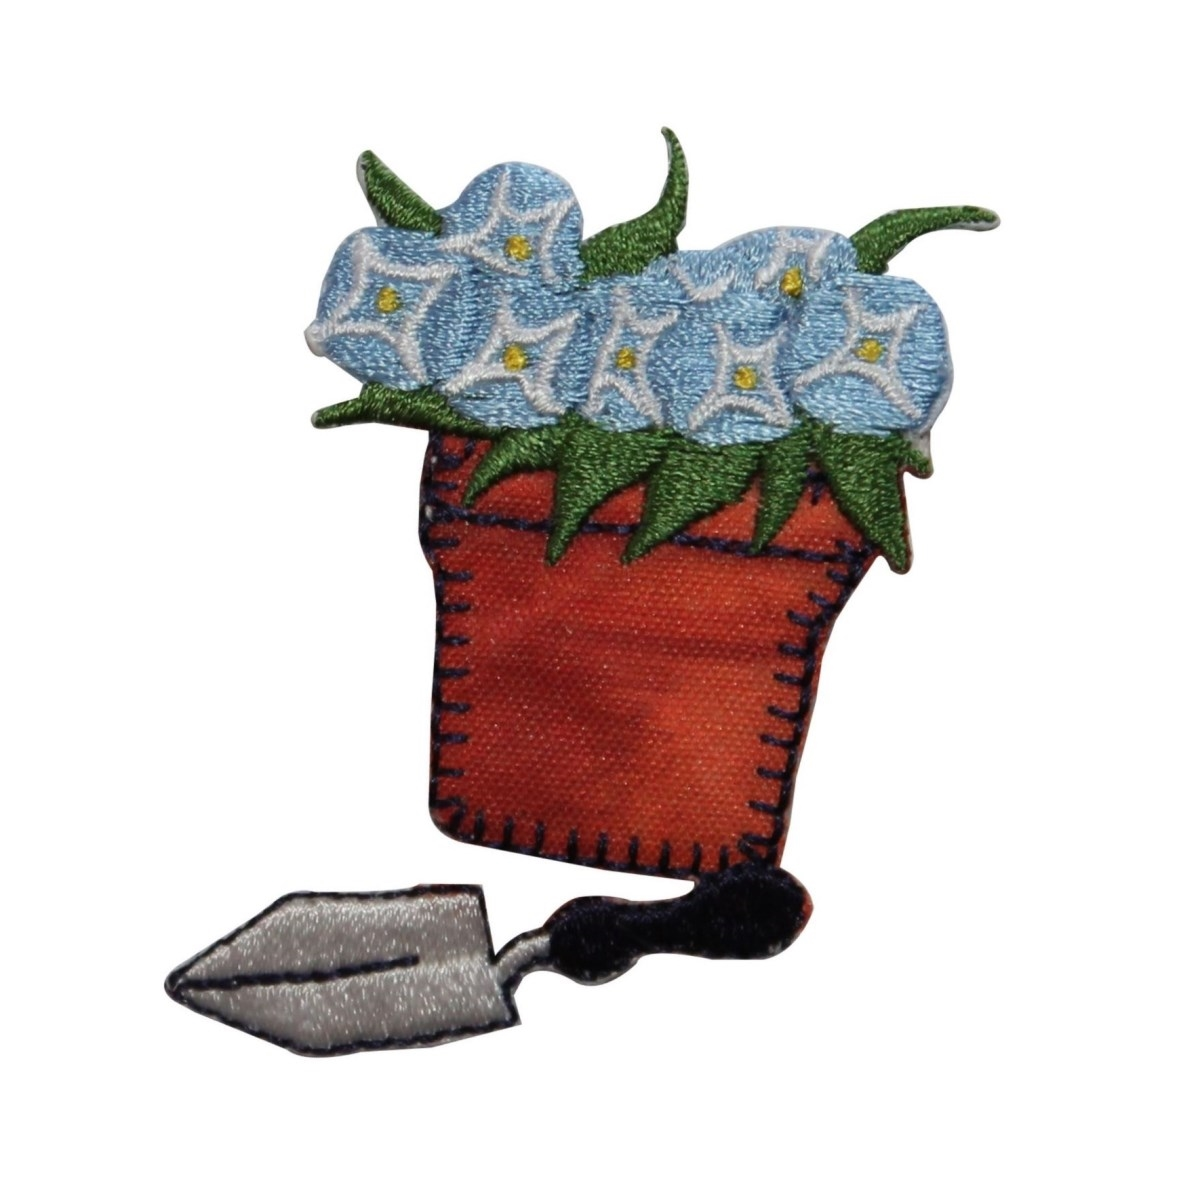 ID 7095 Potted Flowers With Trowel Patch Garden Tool Embroidered IronOn Applique